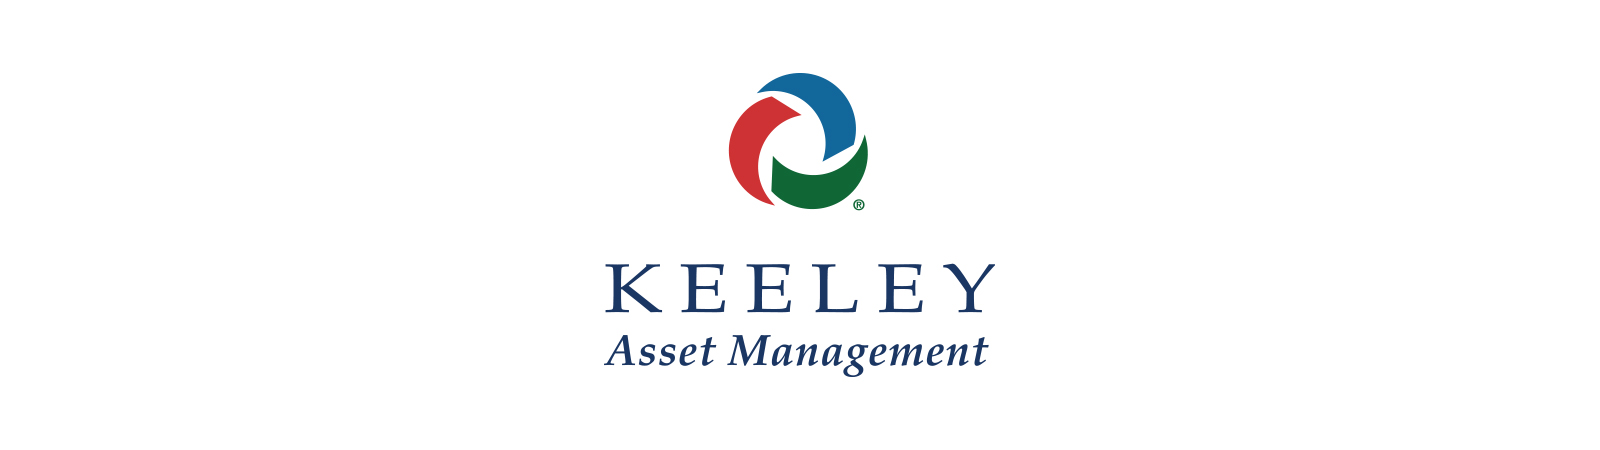 Keeley Asset Management logo image